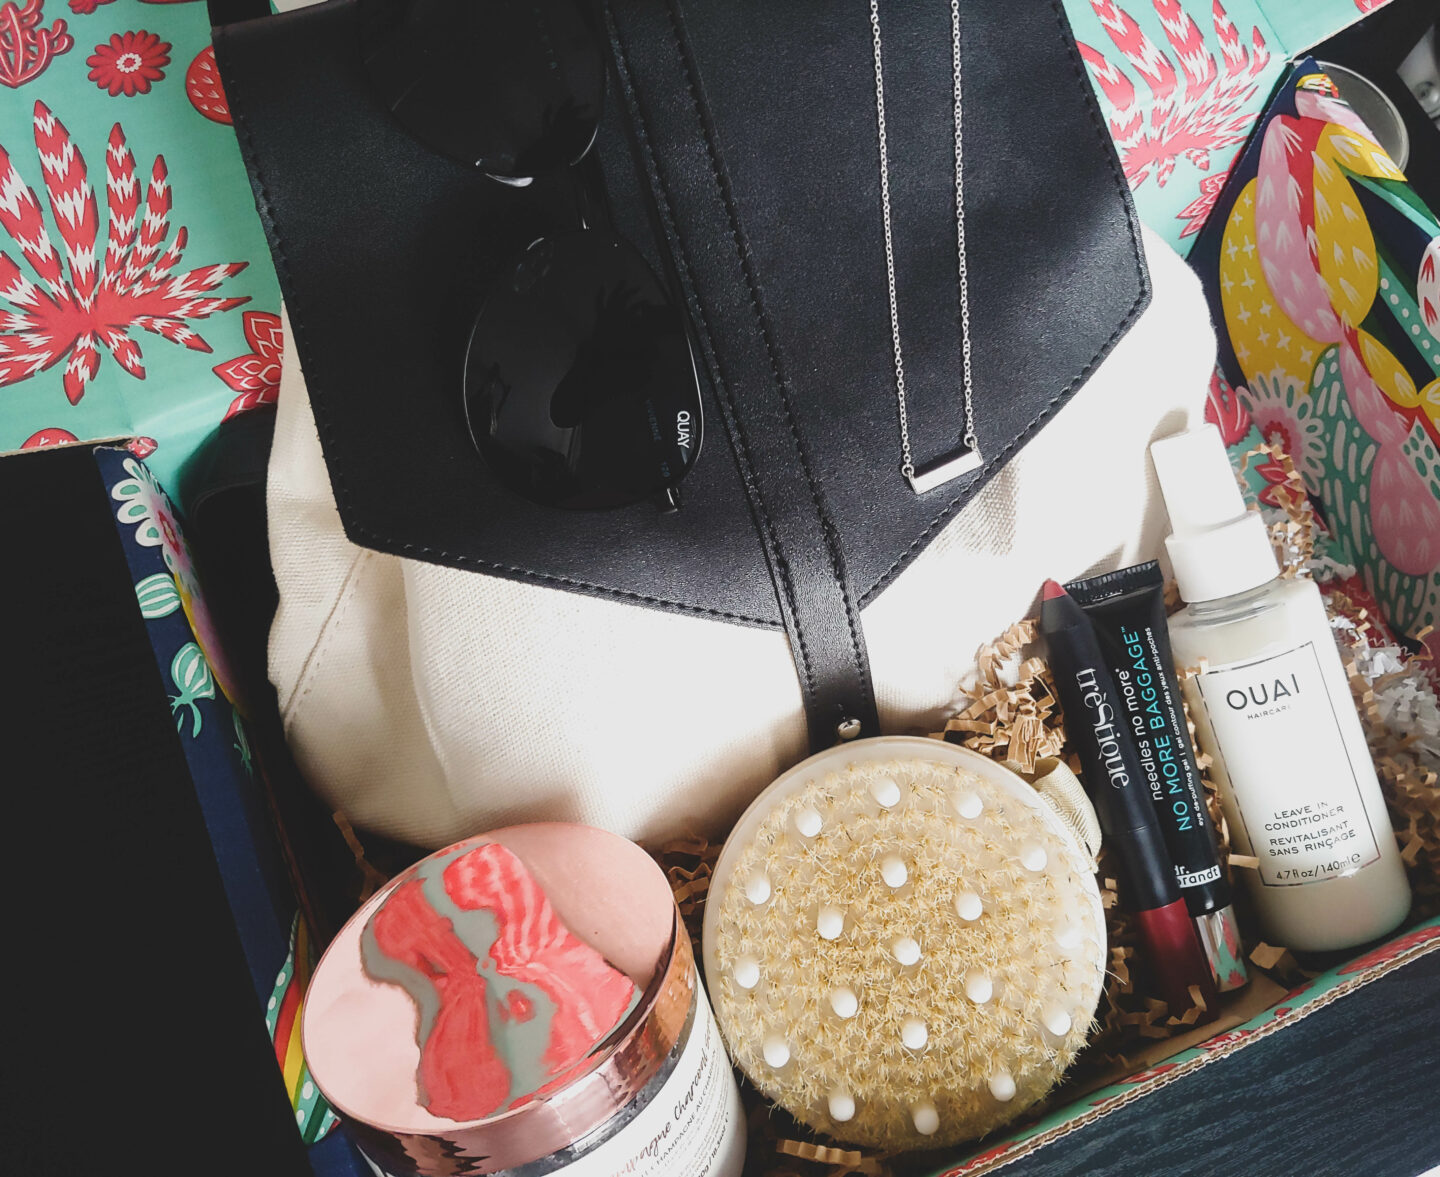 Immerse Yourself in a New Season with the FabFitFun Spring Box